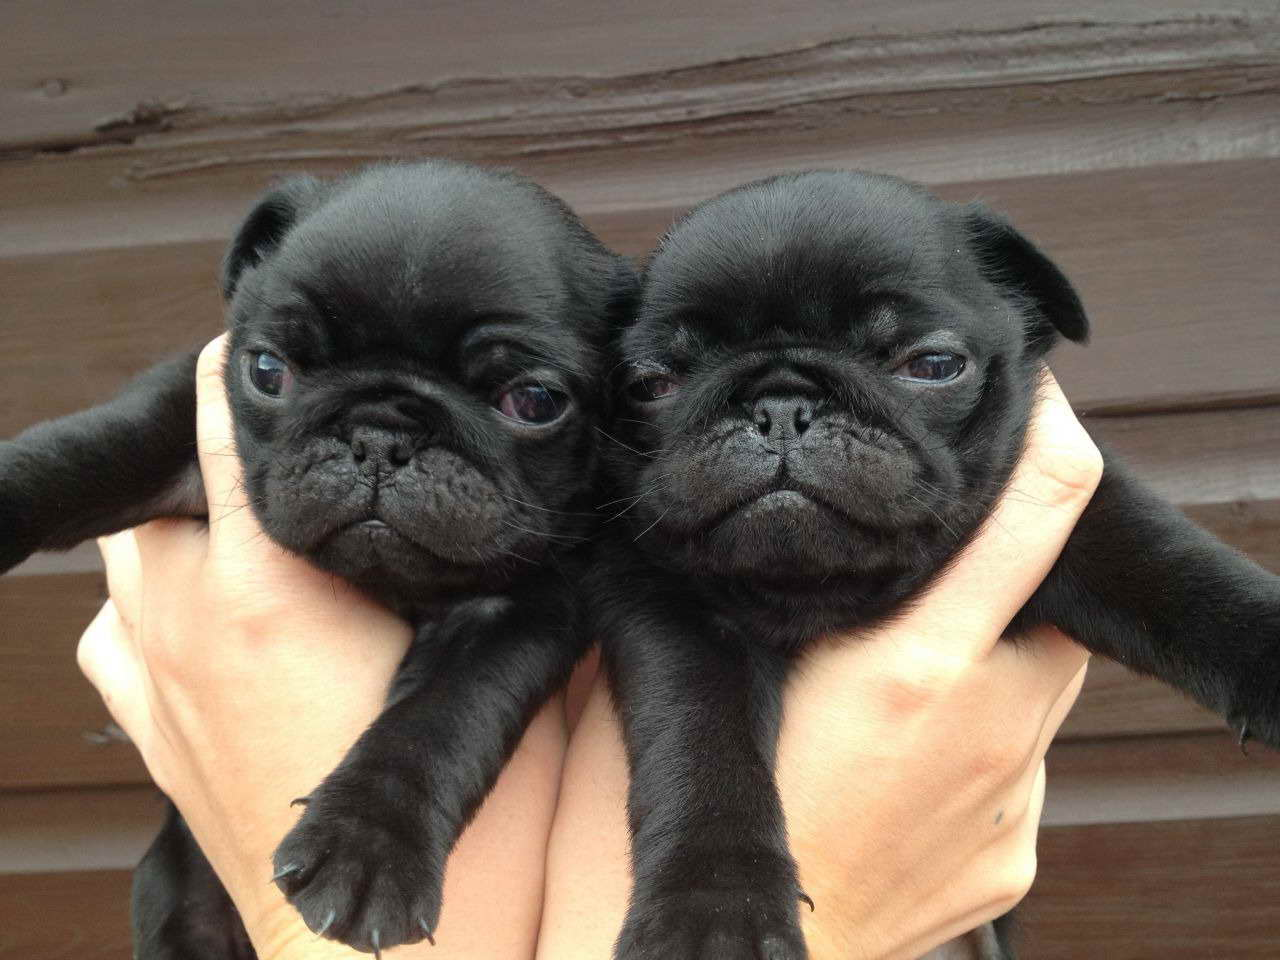 Black Pug Puppies For Sale Near Me Pets And Dogs